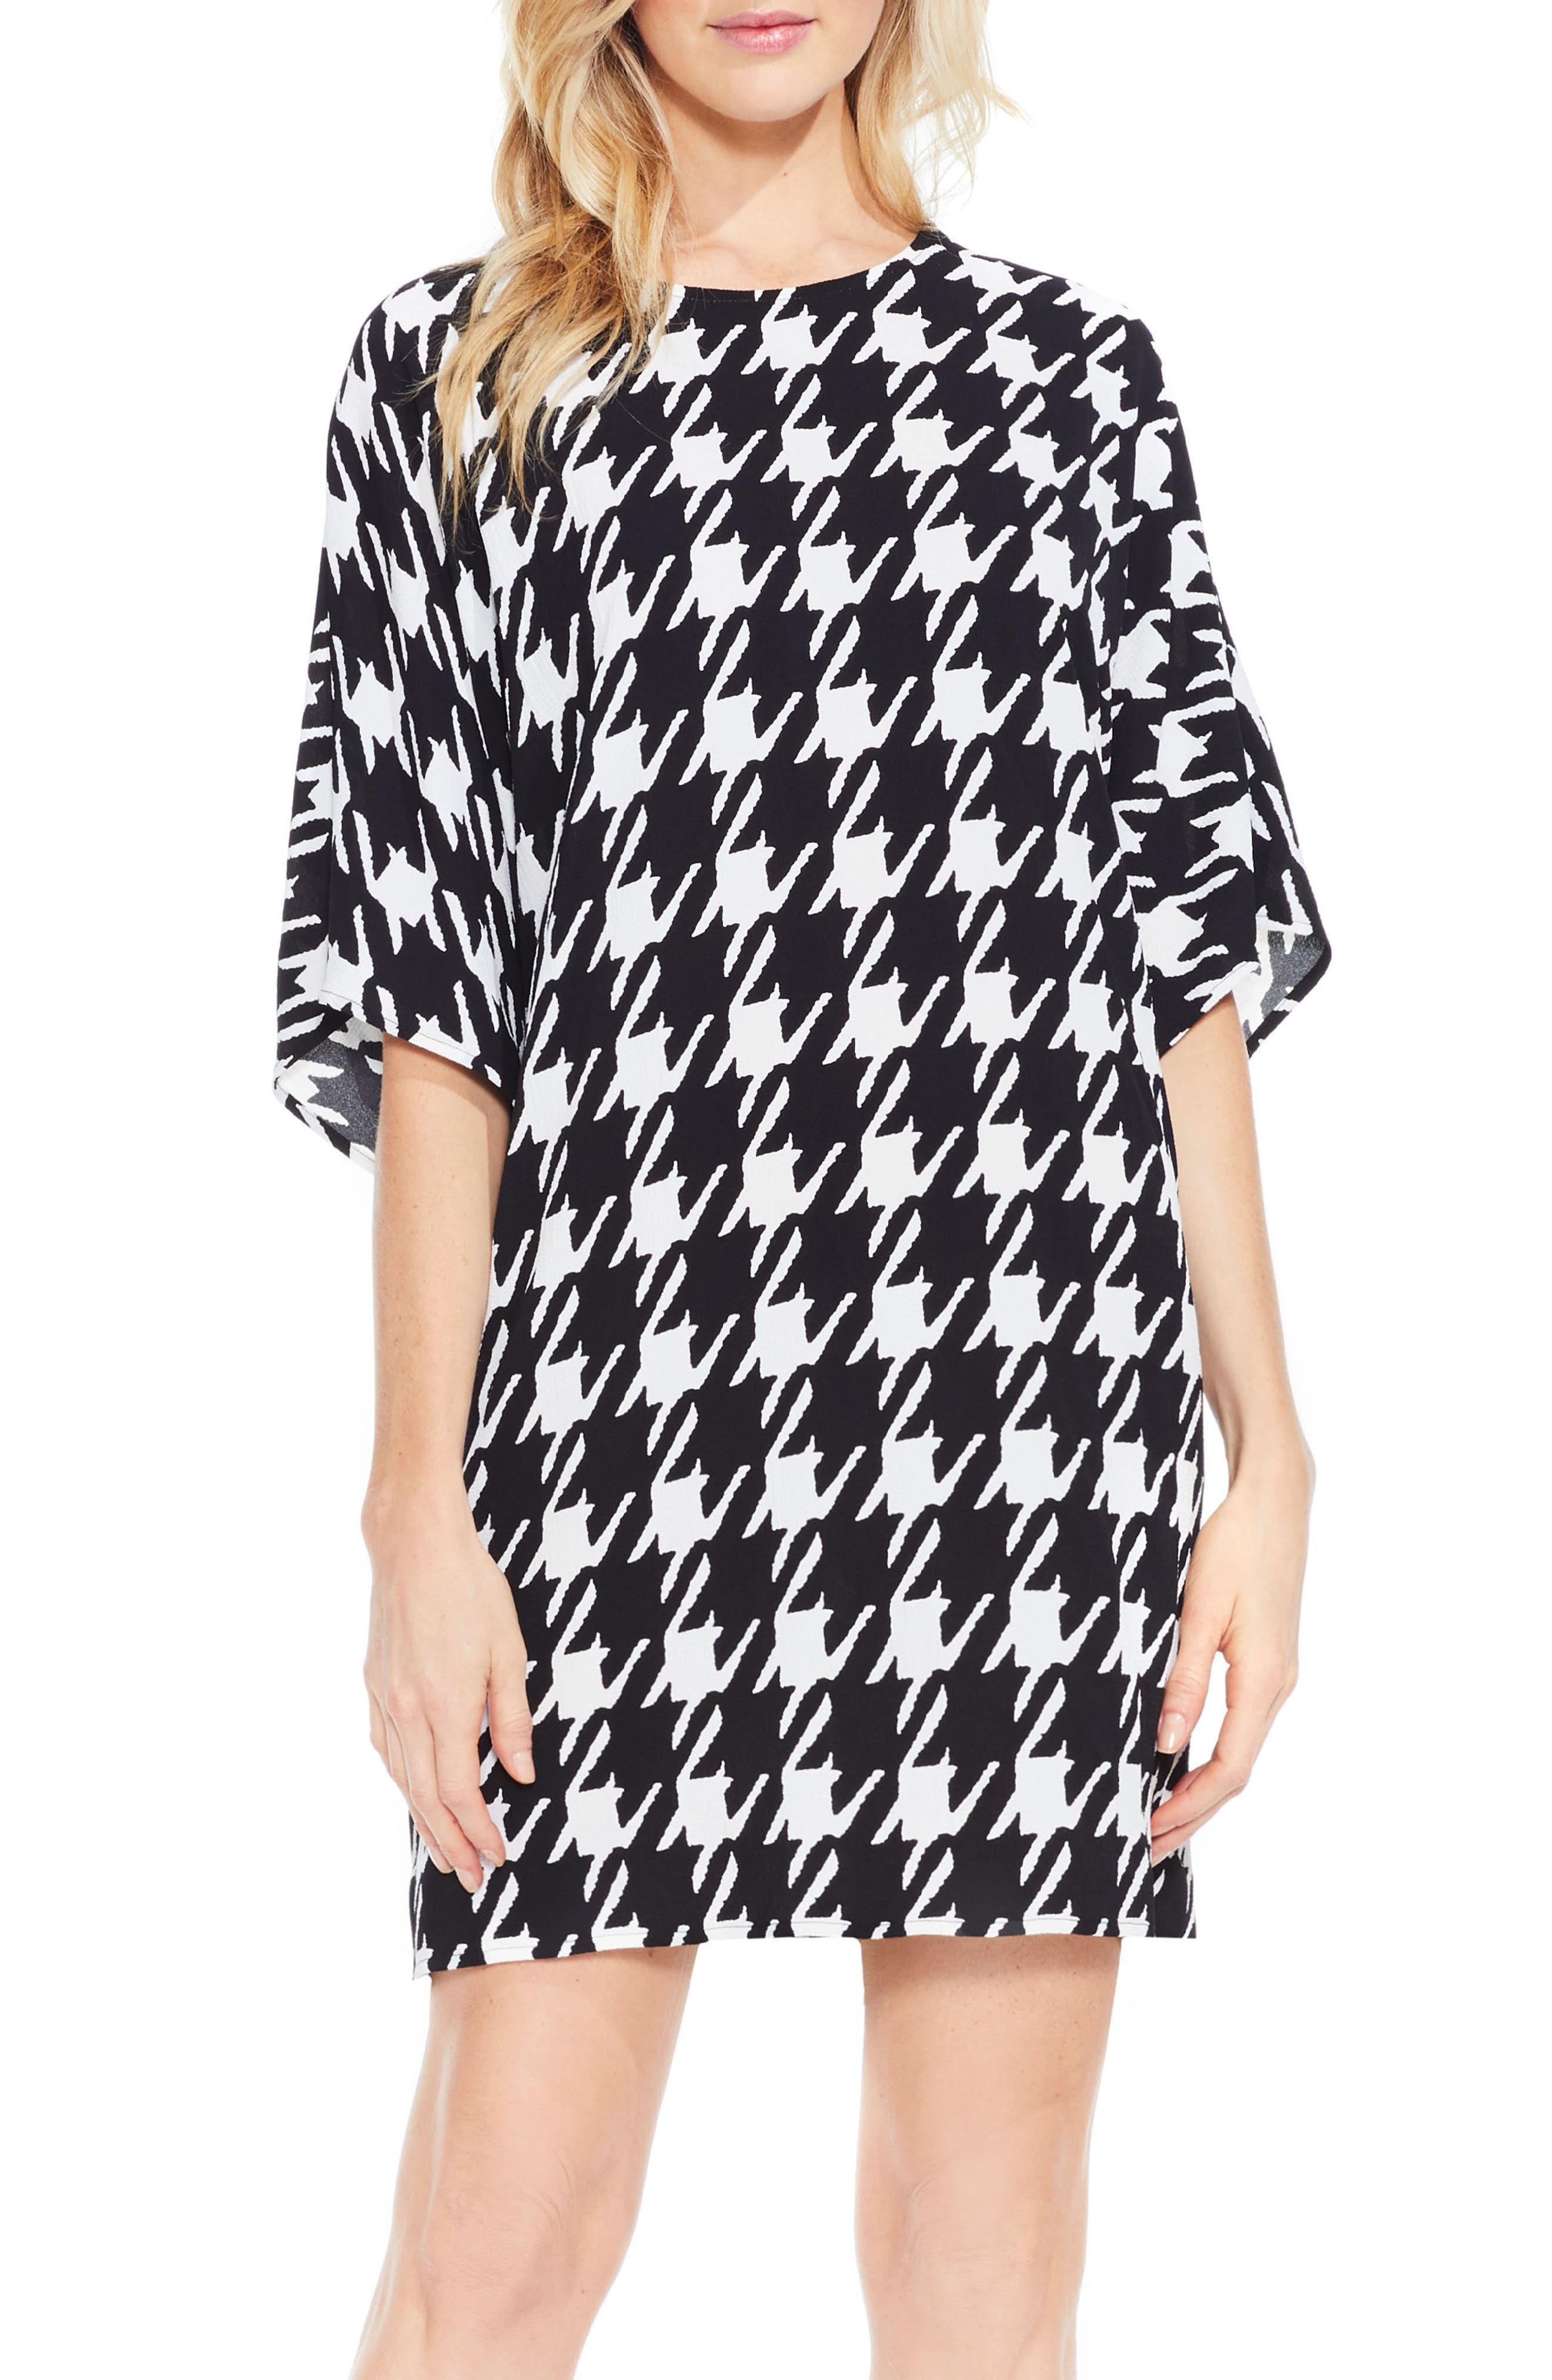 VINCE CAMUTO Houndstooth Dress